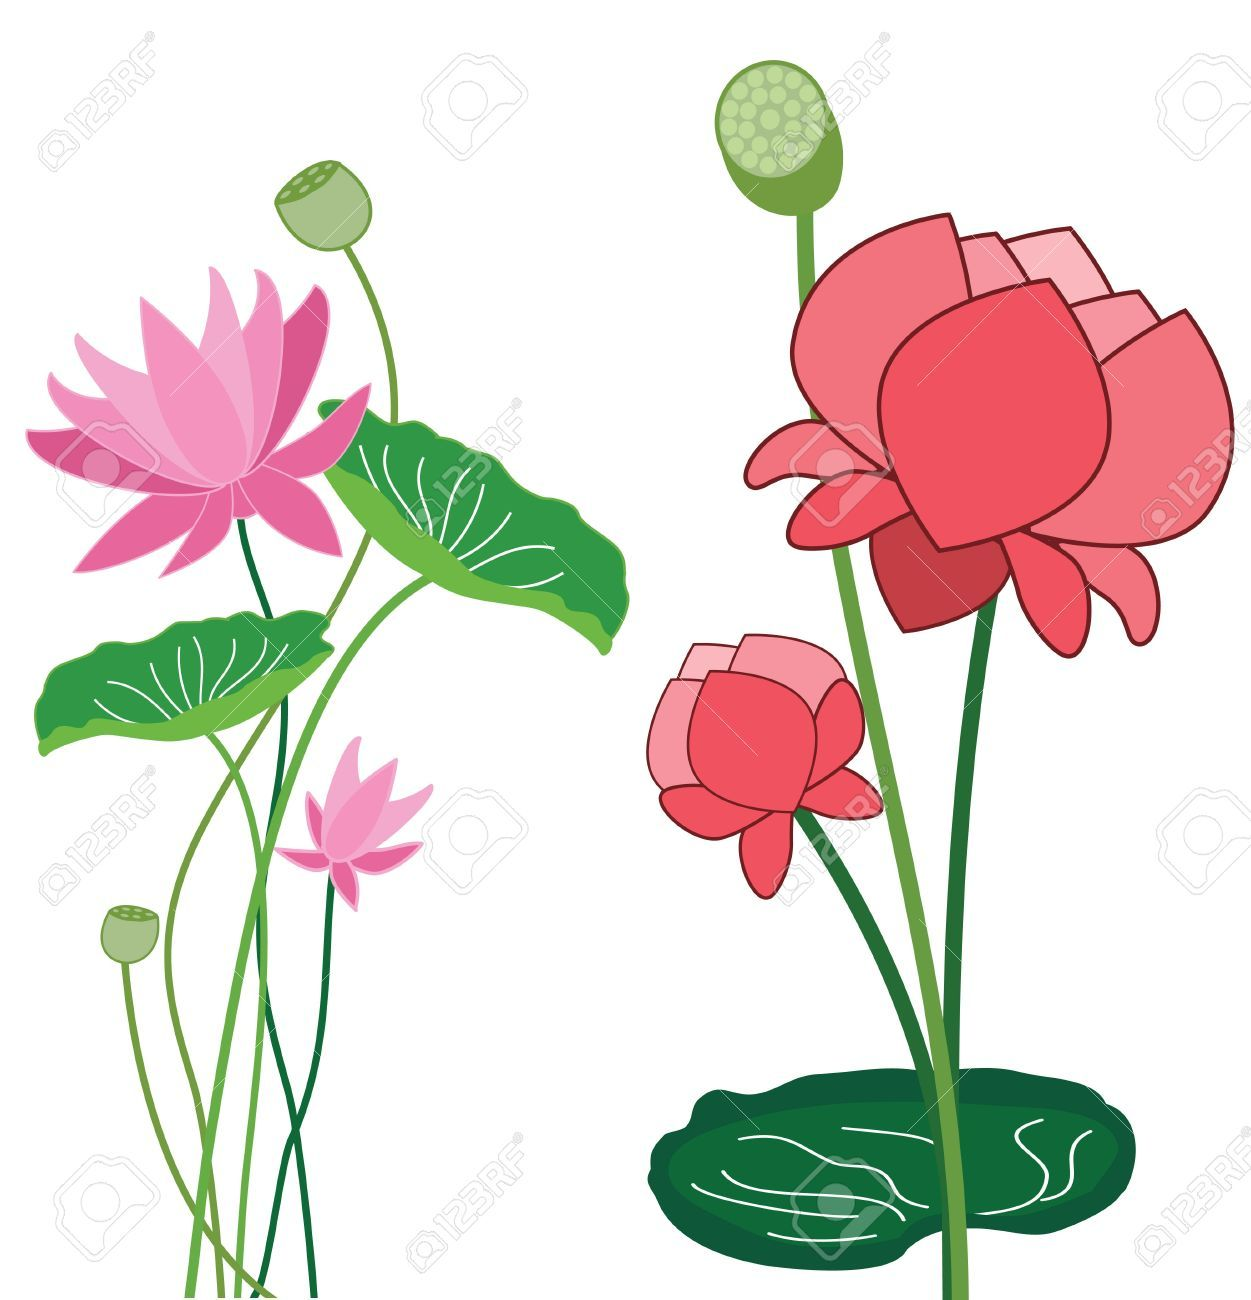 lotus flower Lotus flower Illustration Hoa sen, Hoa